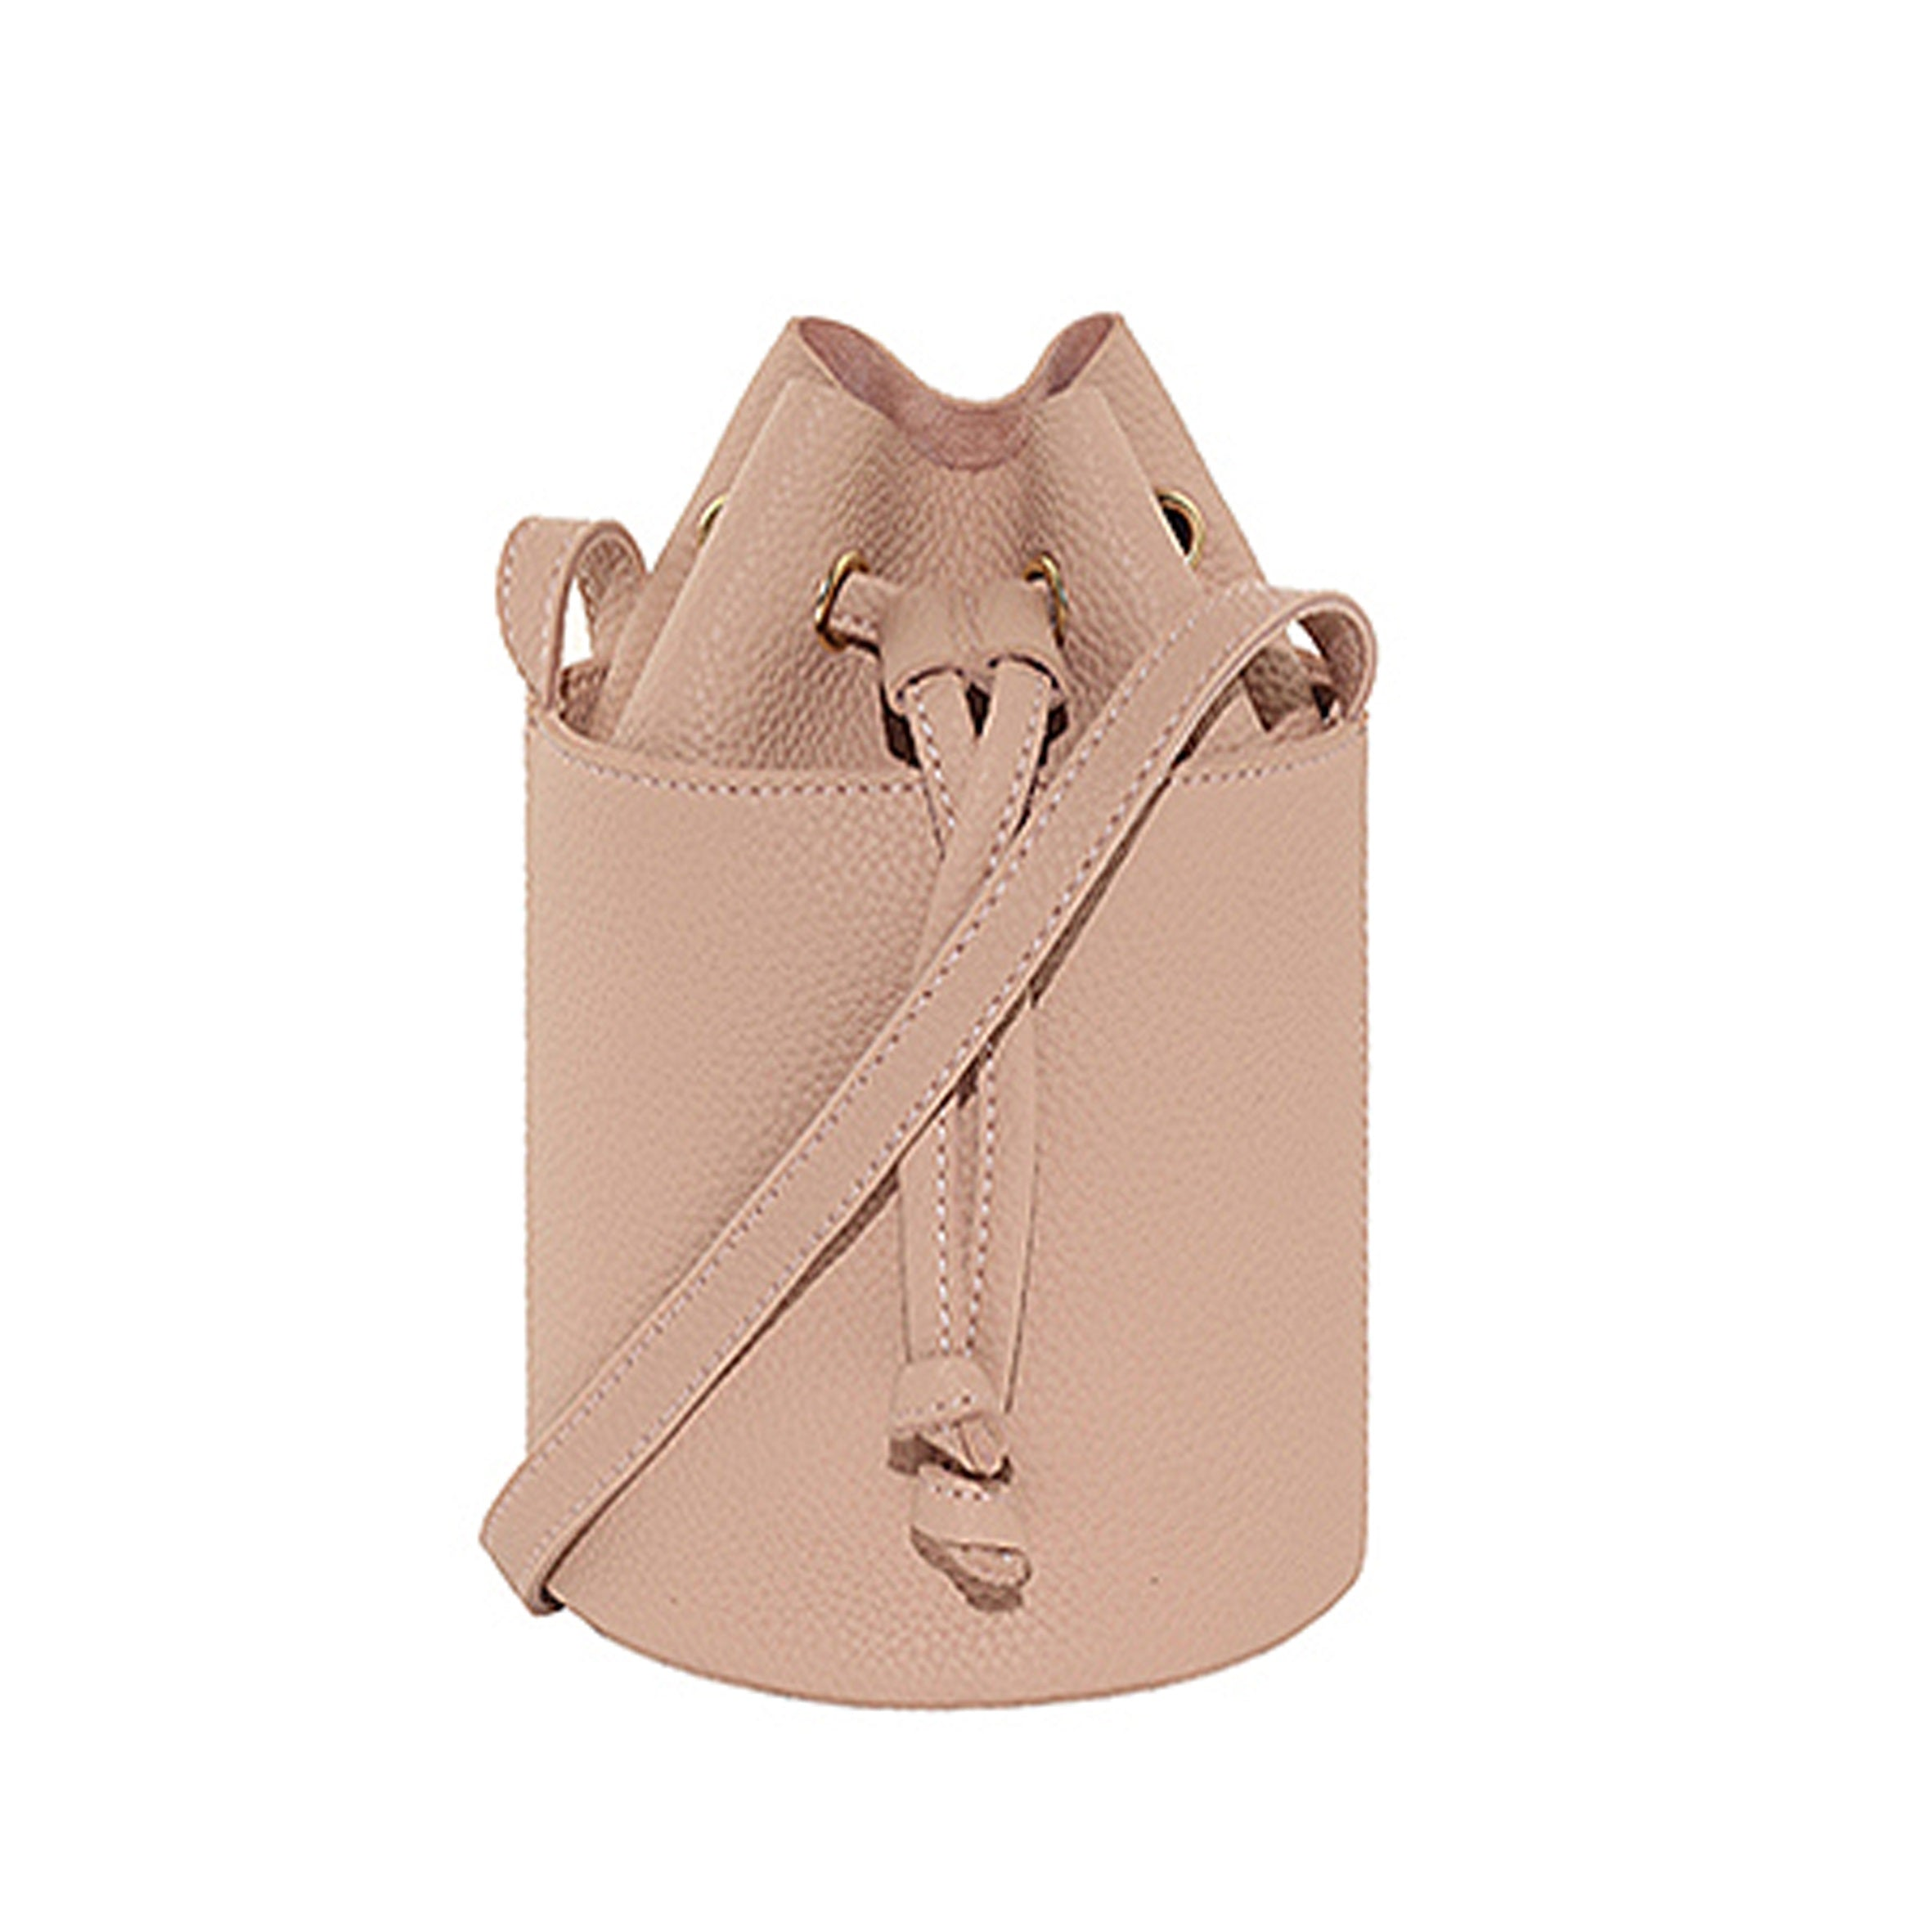 Ansley Bucket Bag - Blush